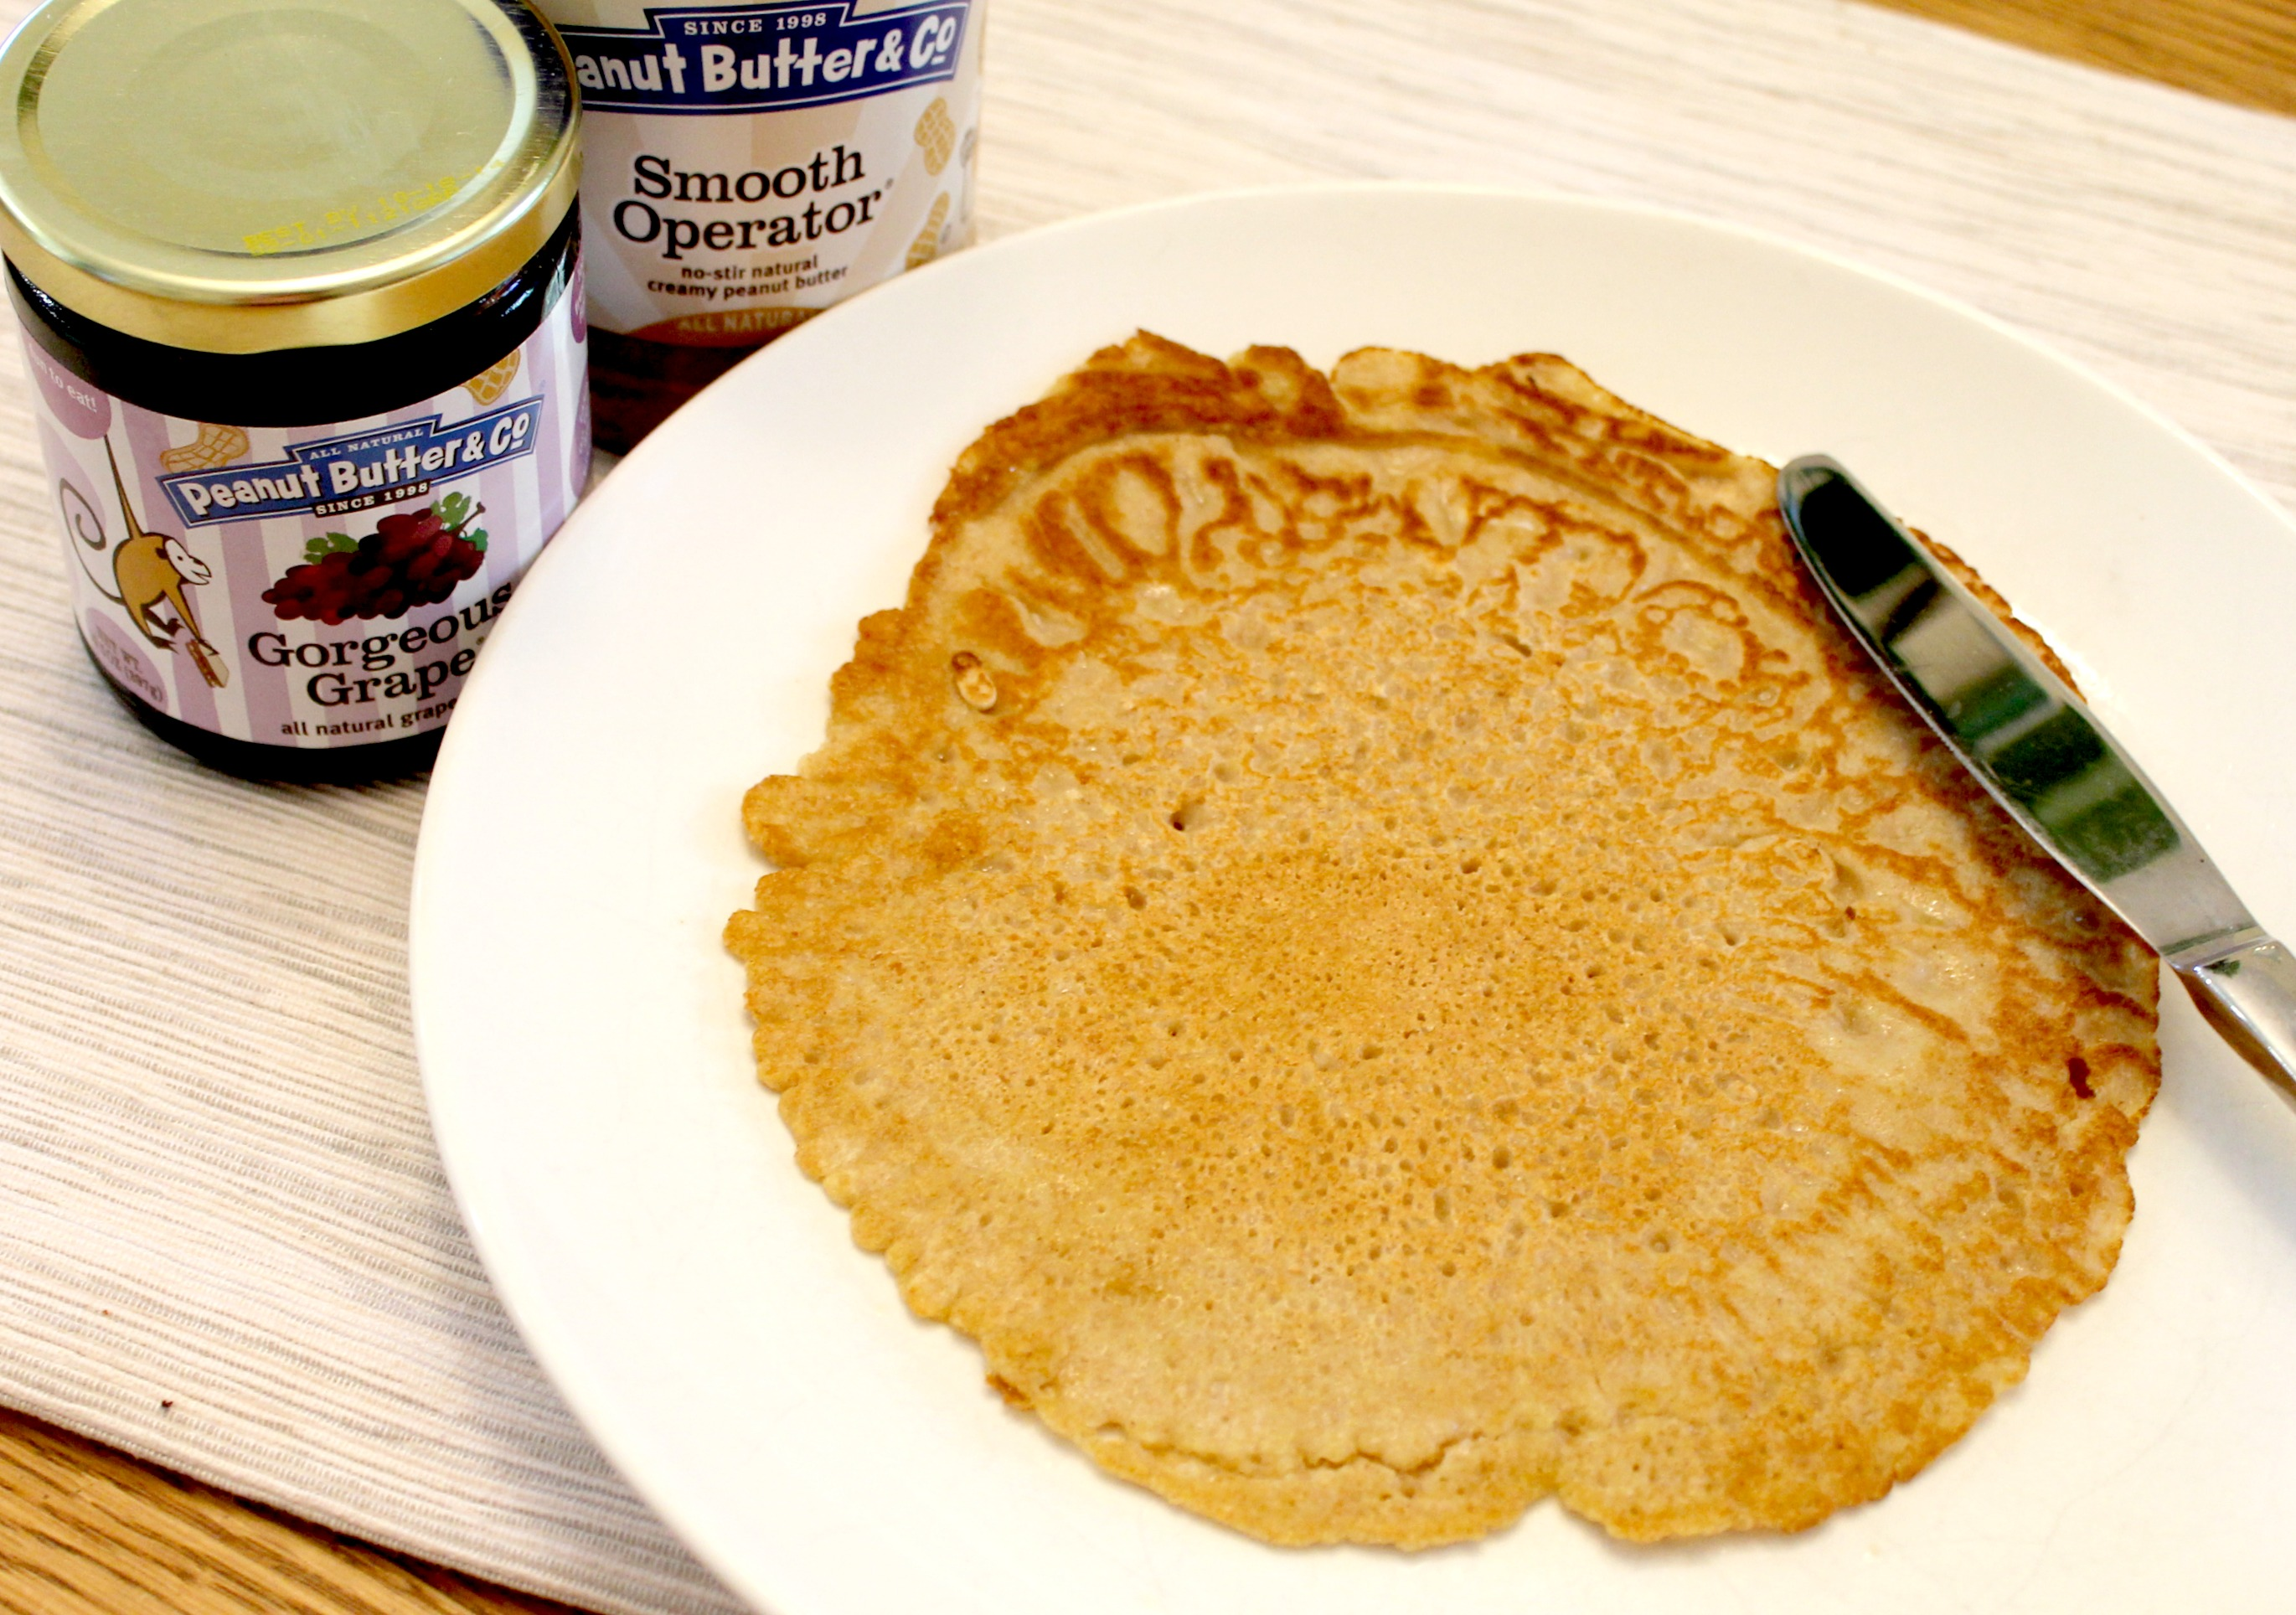 peanut butter and jelly crepes spread